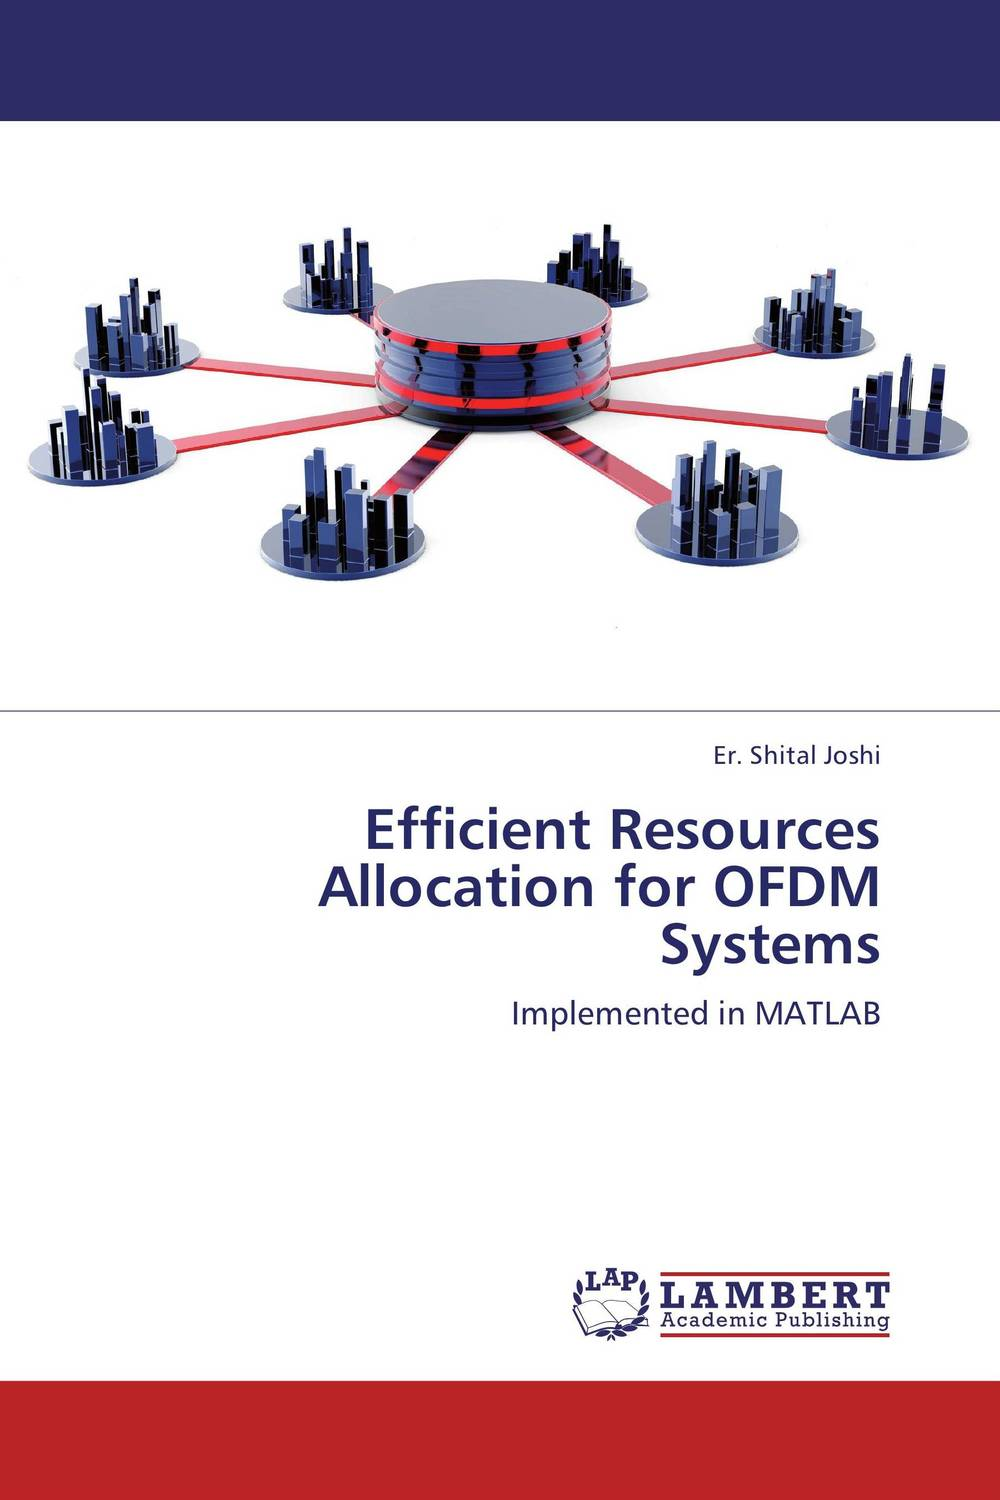 Efficient Resources Allocation for OFDM Systems evans v new round up 5 student's book грамматика английского языка russian edition with cd rom 4 th edition